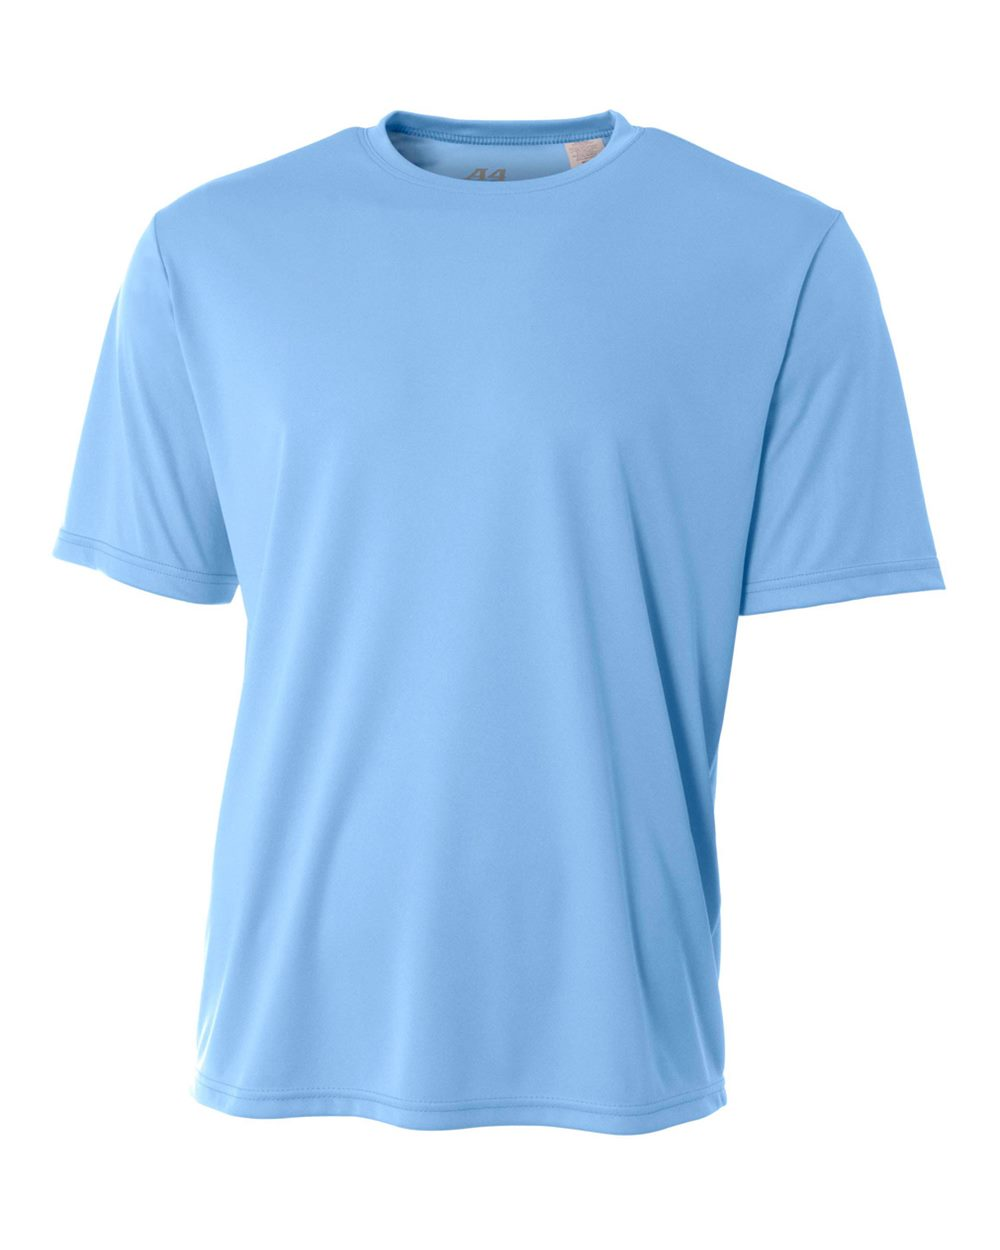 mw-polo-light-blue.jpg